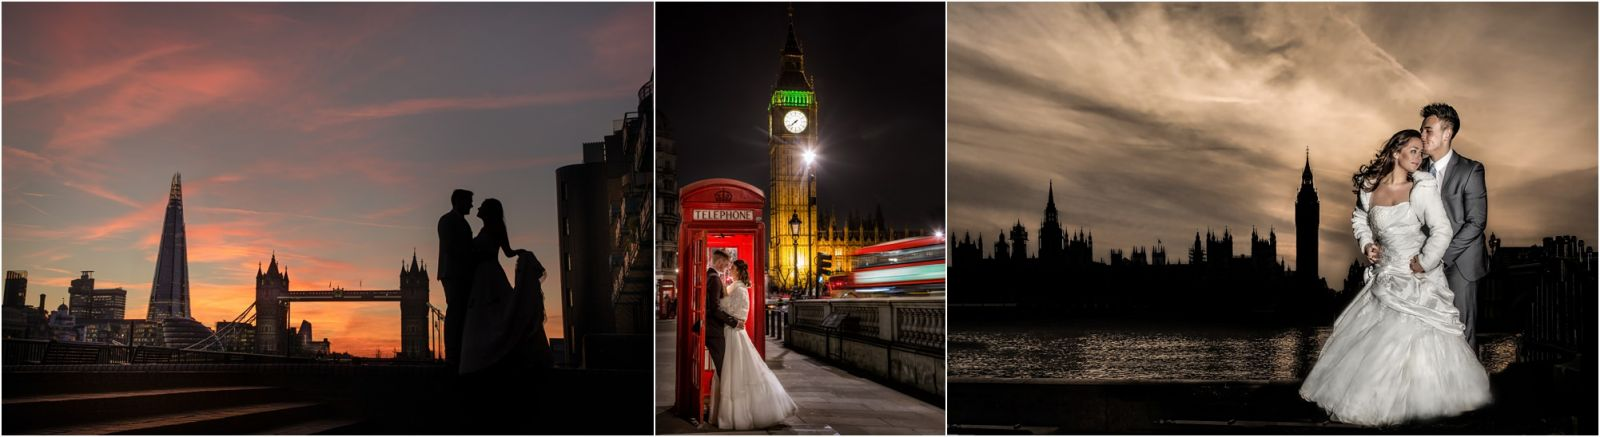 London Wedding Photography Training Course